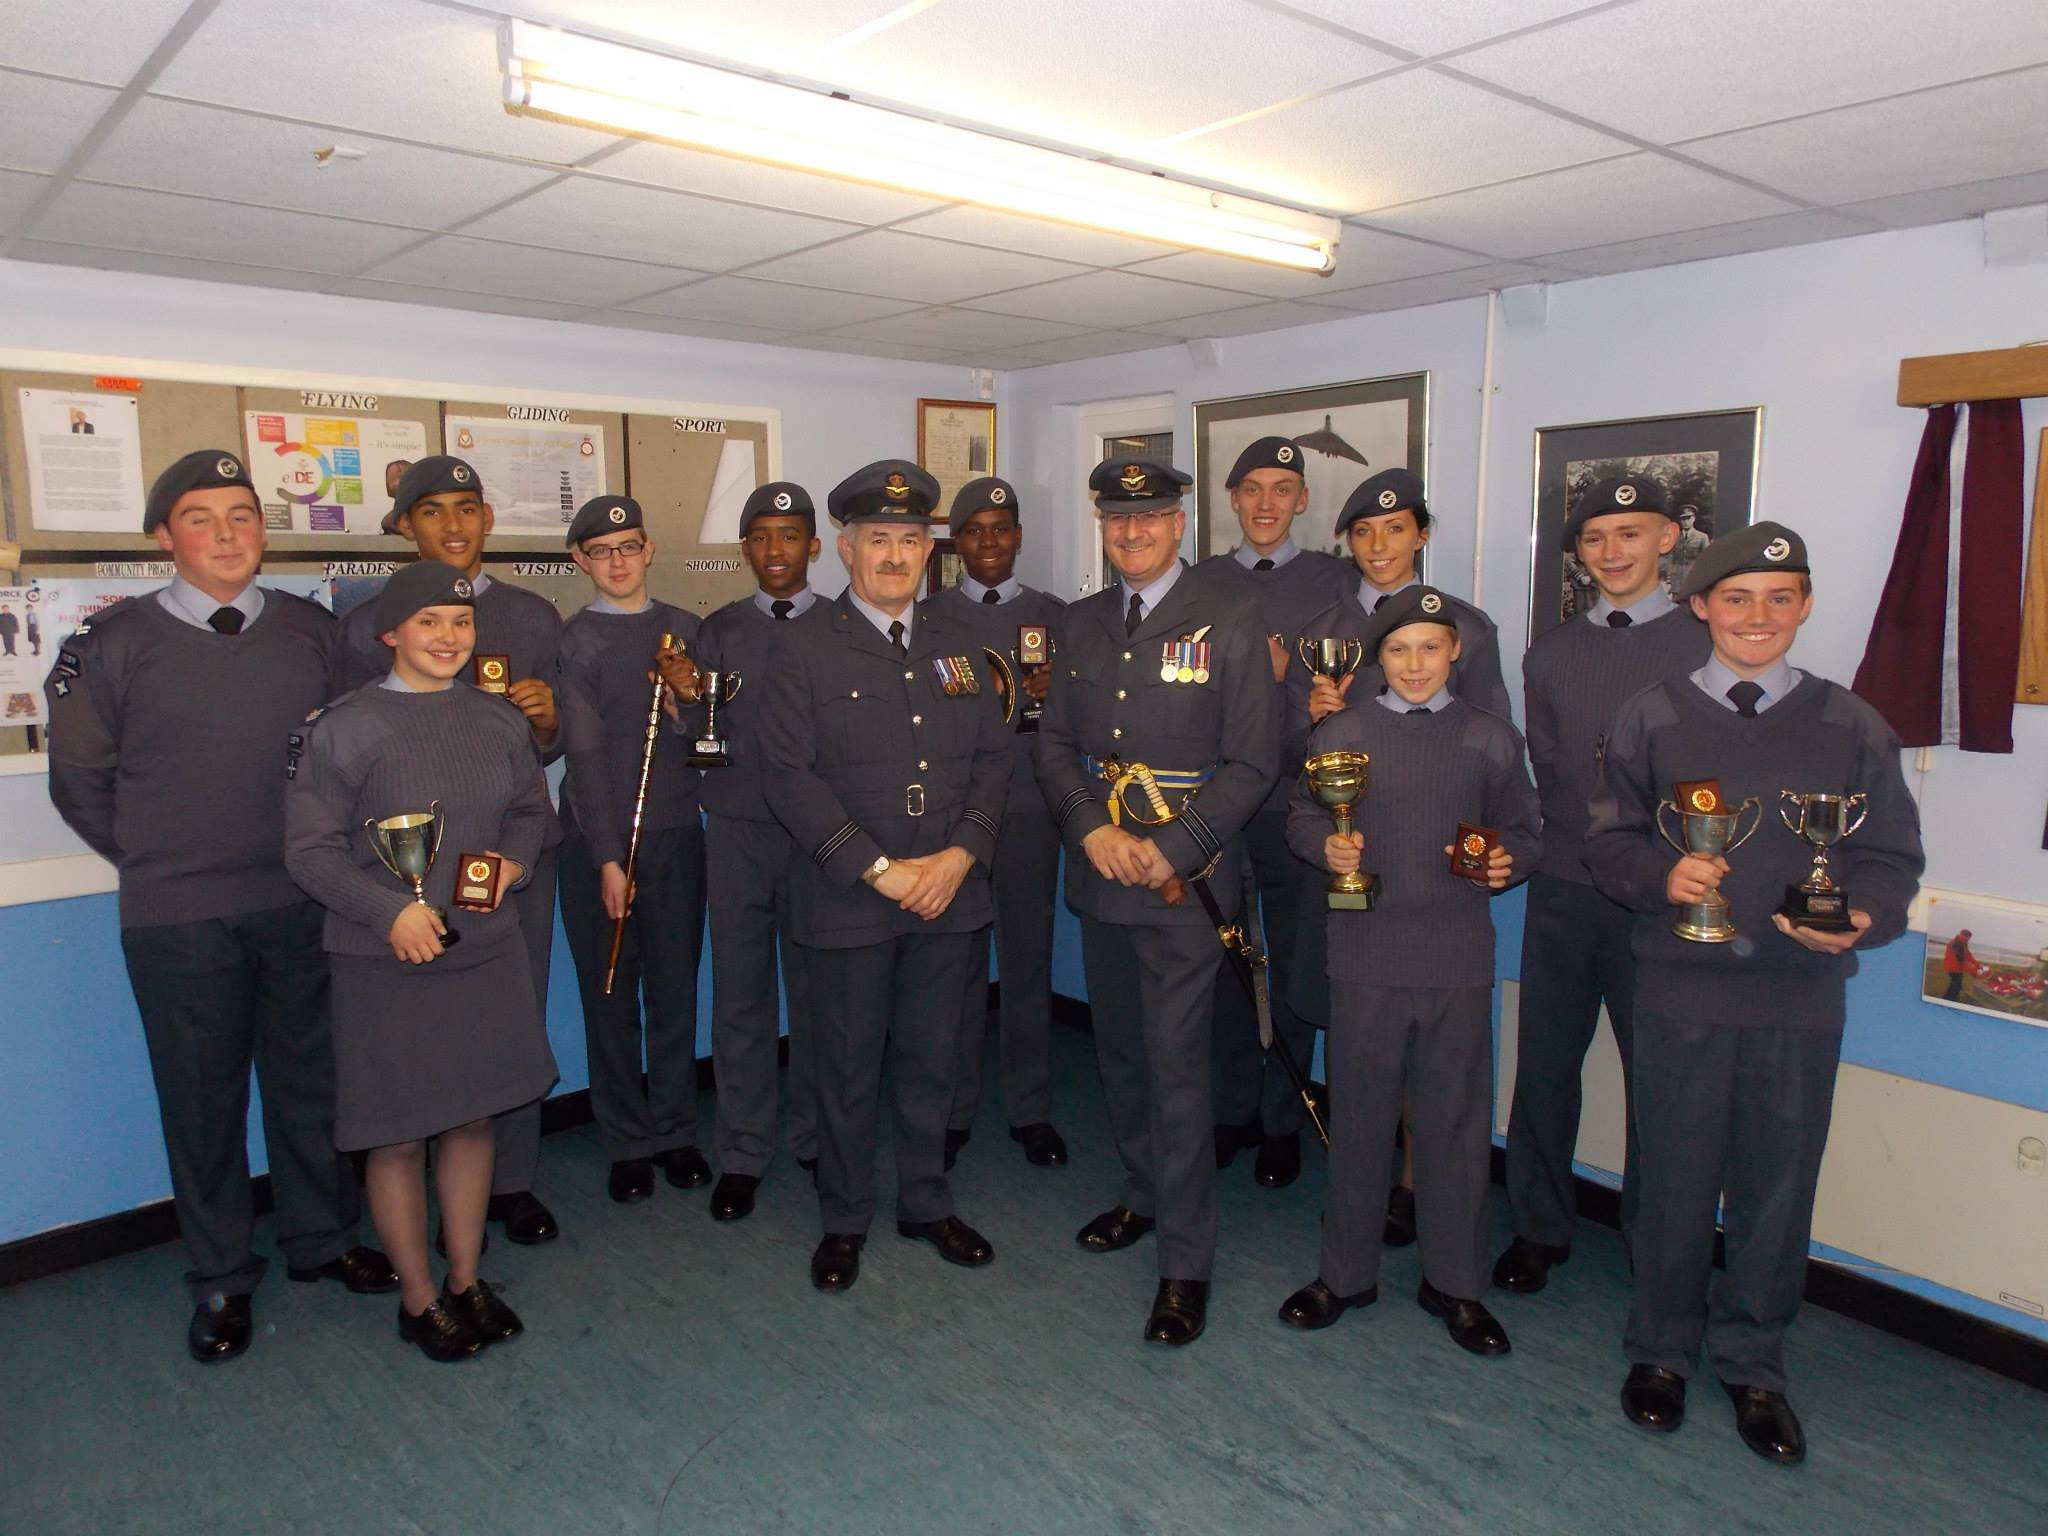 Annual Inspection 2013